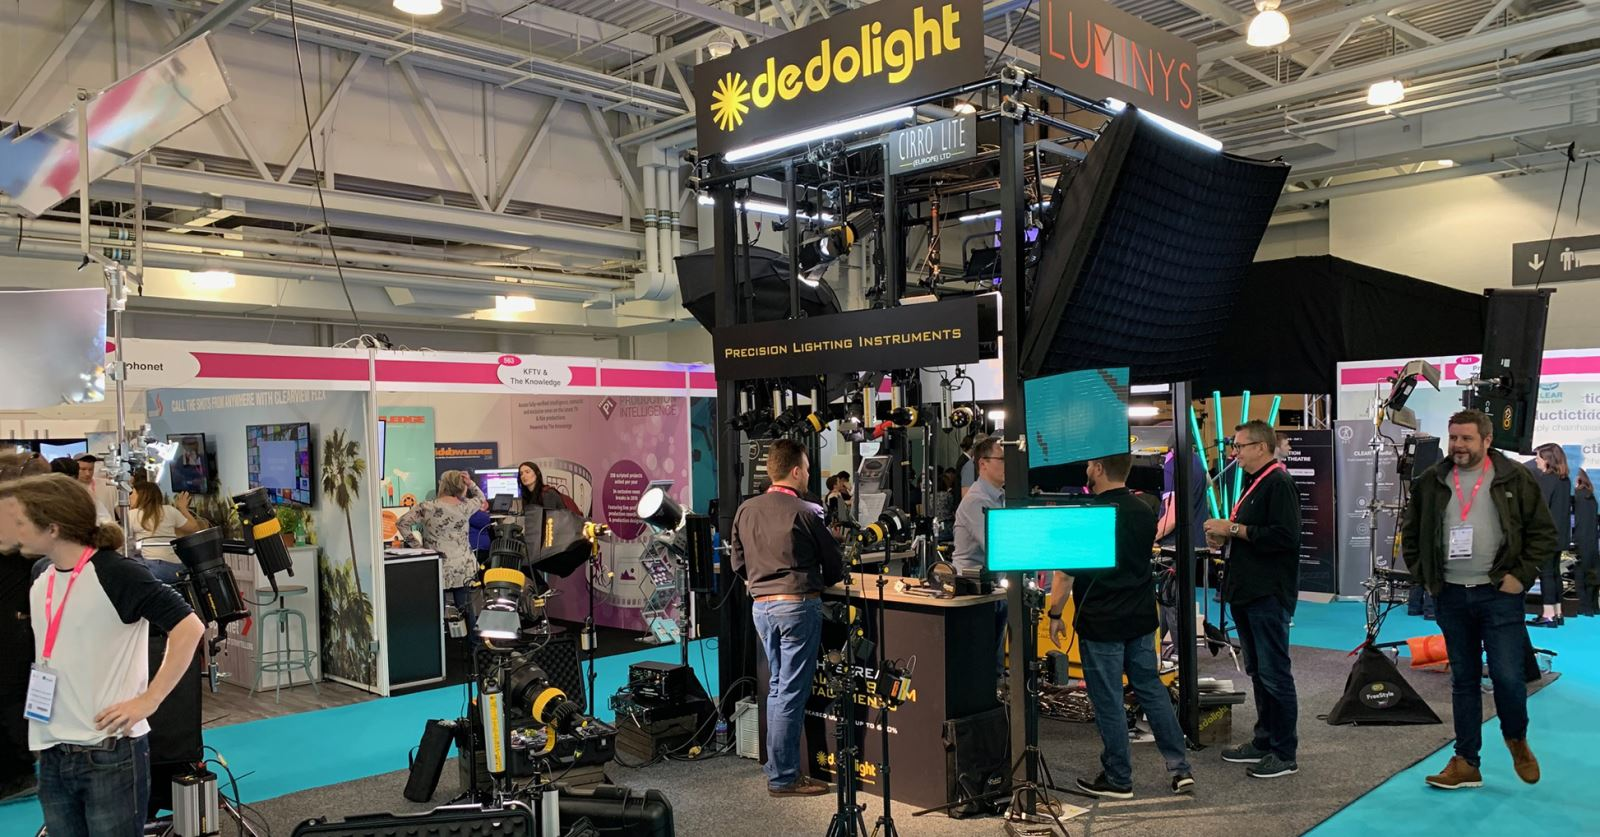 GTC sponsors Dedolight's display of 'Precision Lighting Instruments' at the Media Production Show